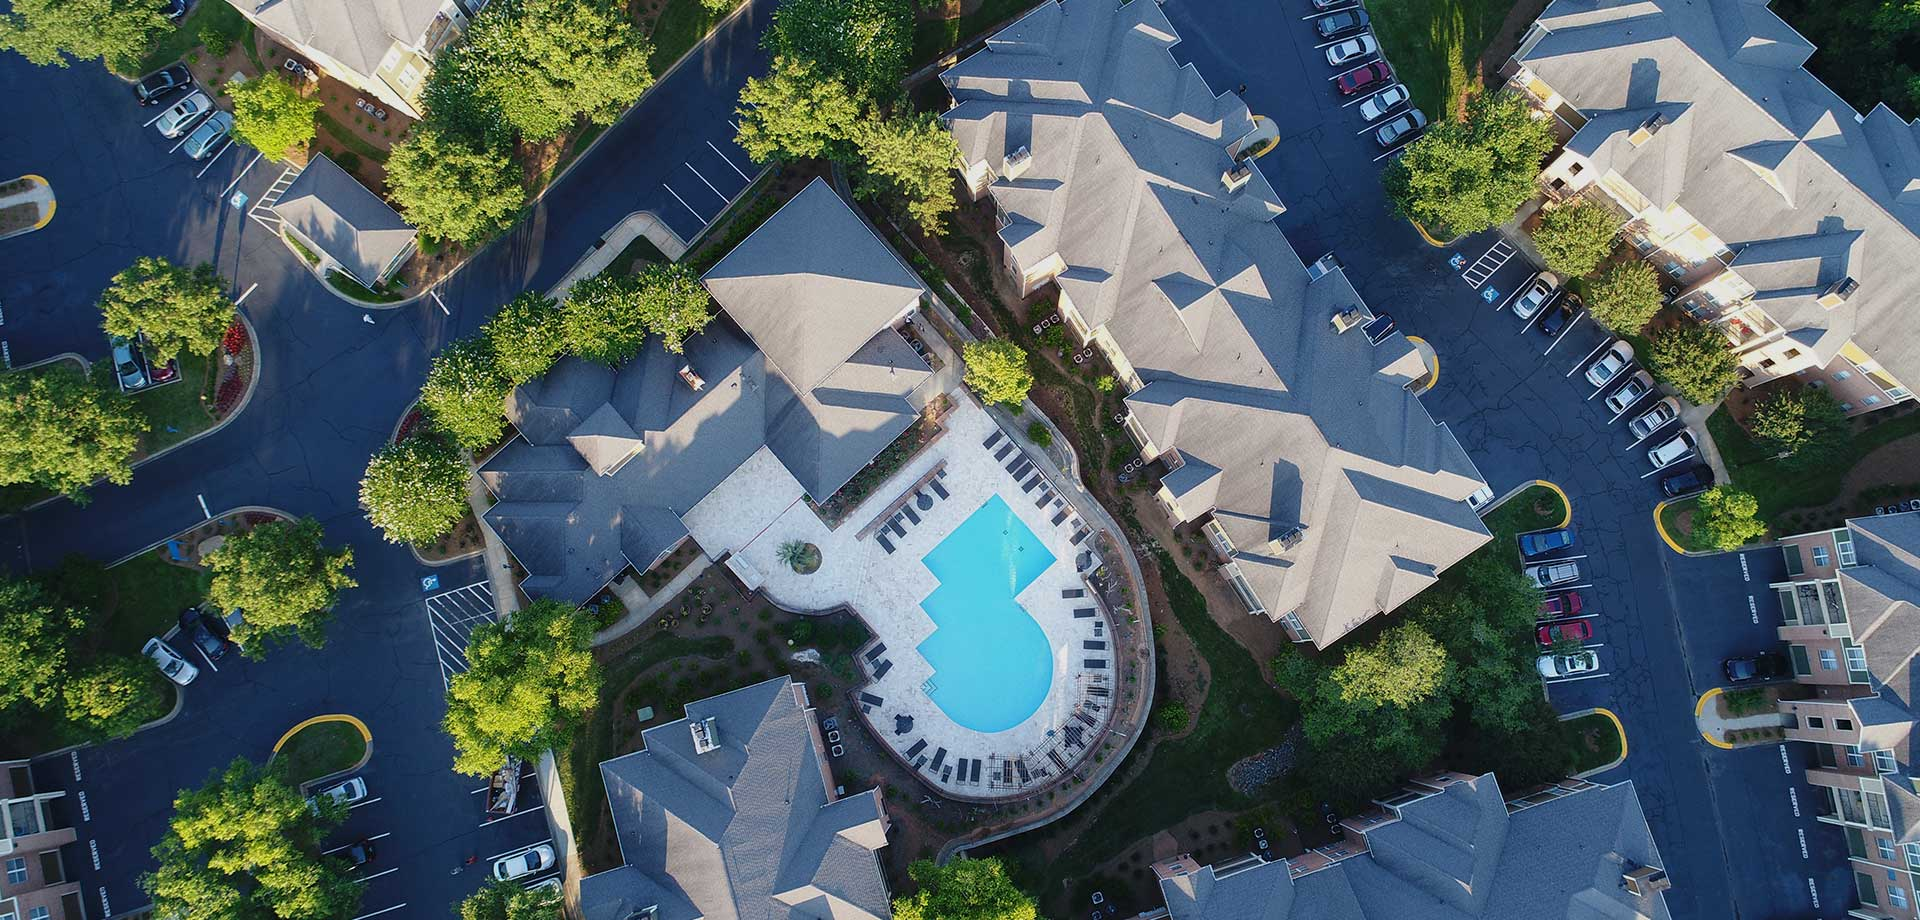 Pool Contractors & Remodeling | Charlotte & Mooresville, NC | Daily ...